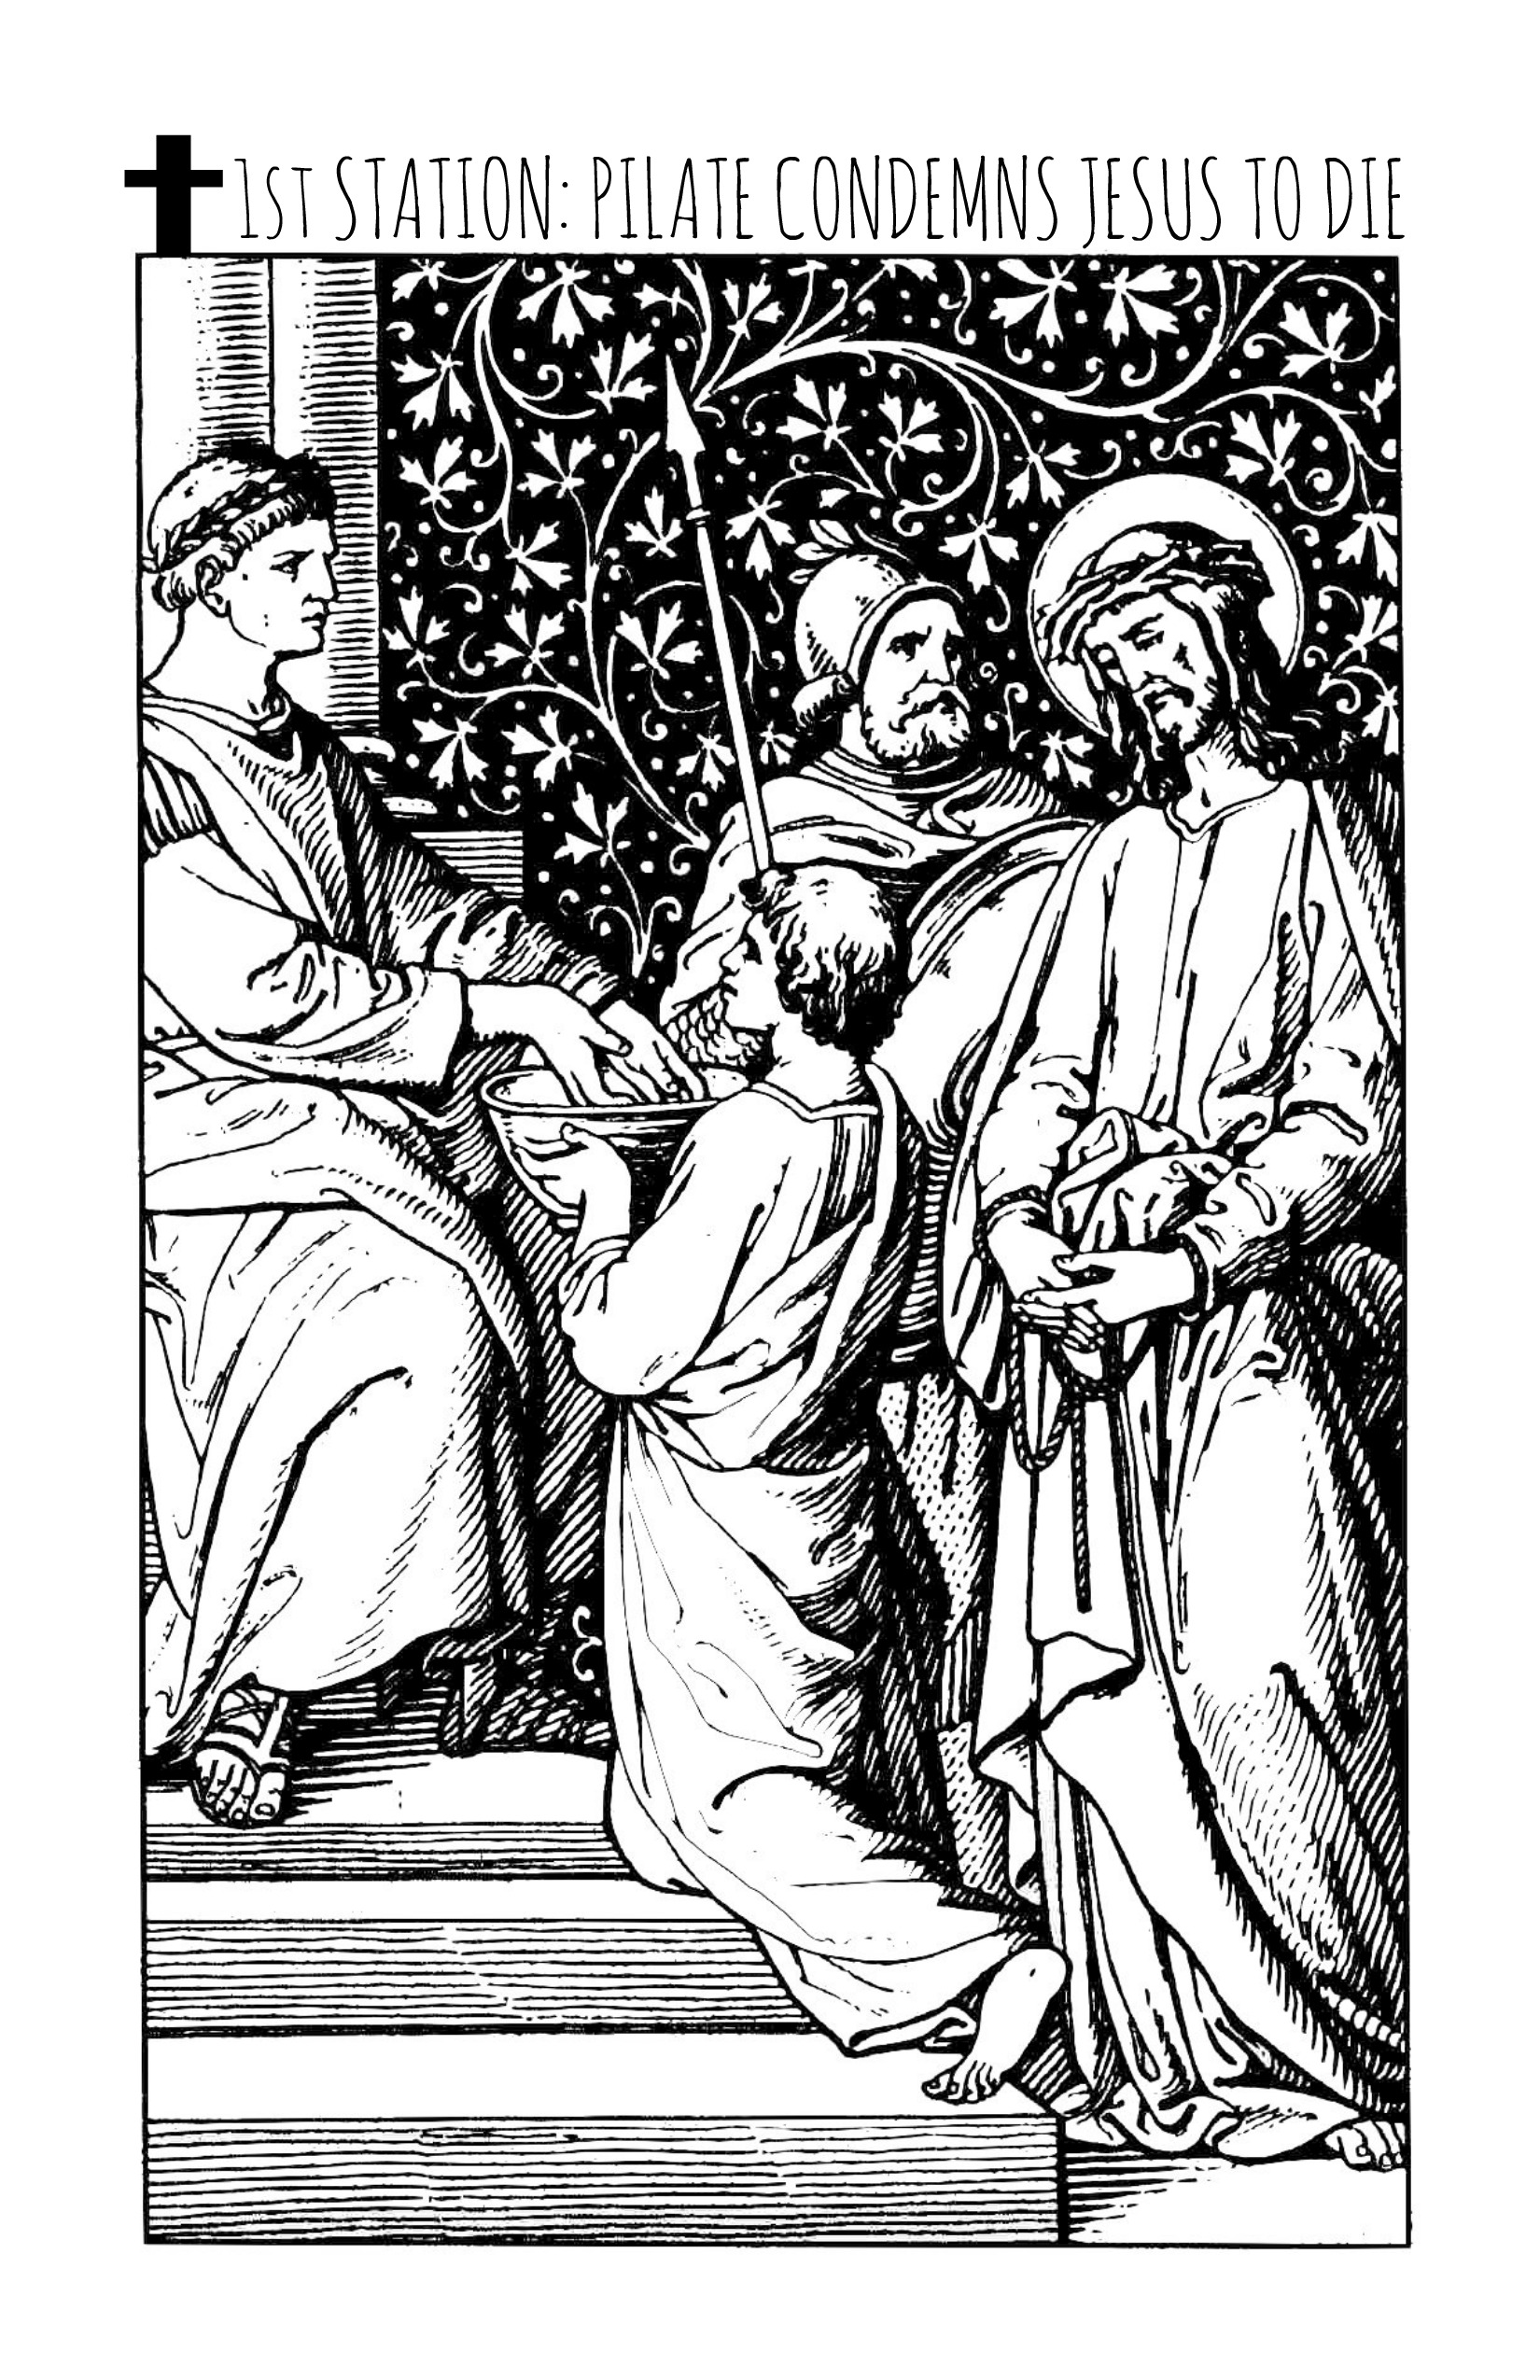 stations of the cross coloring stations of the cross coloring page home sketch coloring stations coloring of cross the